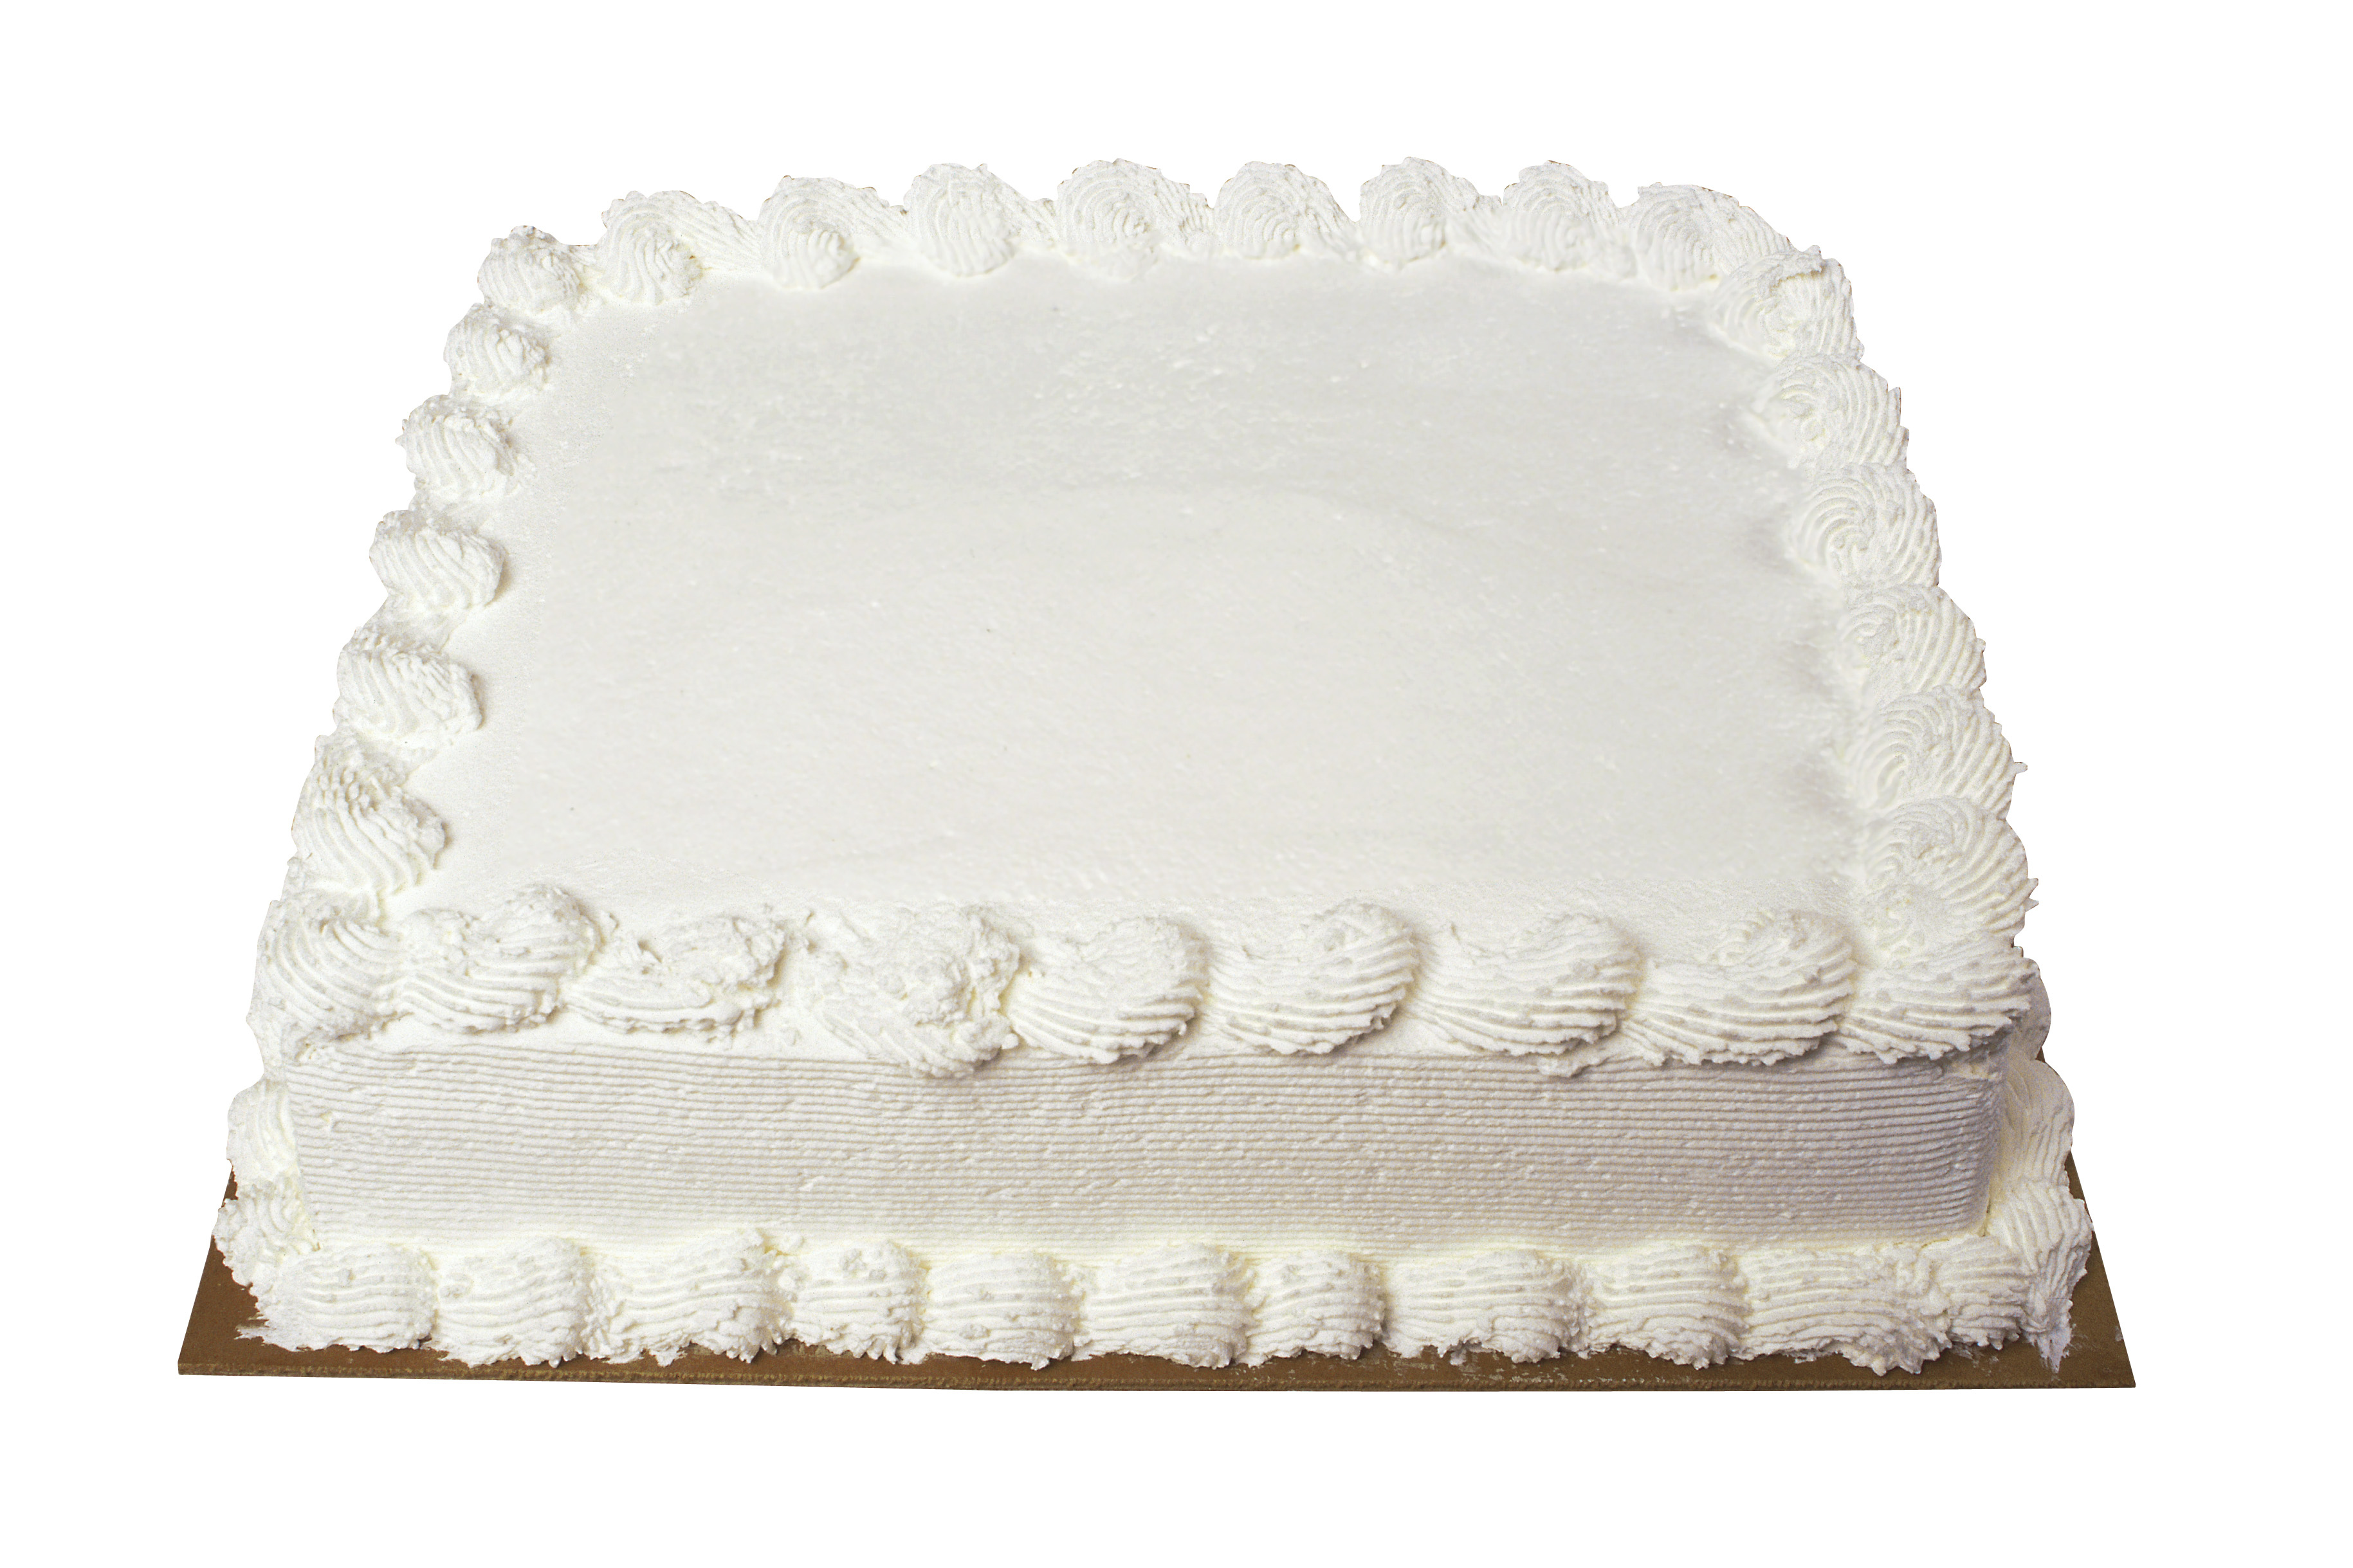 simple rectangular wedding cakes plain rectangle cake www pixshark images galleries 20009